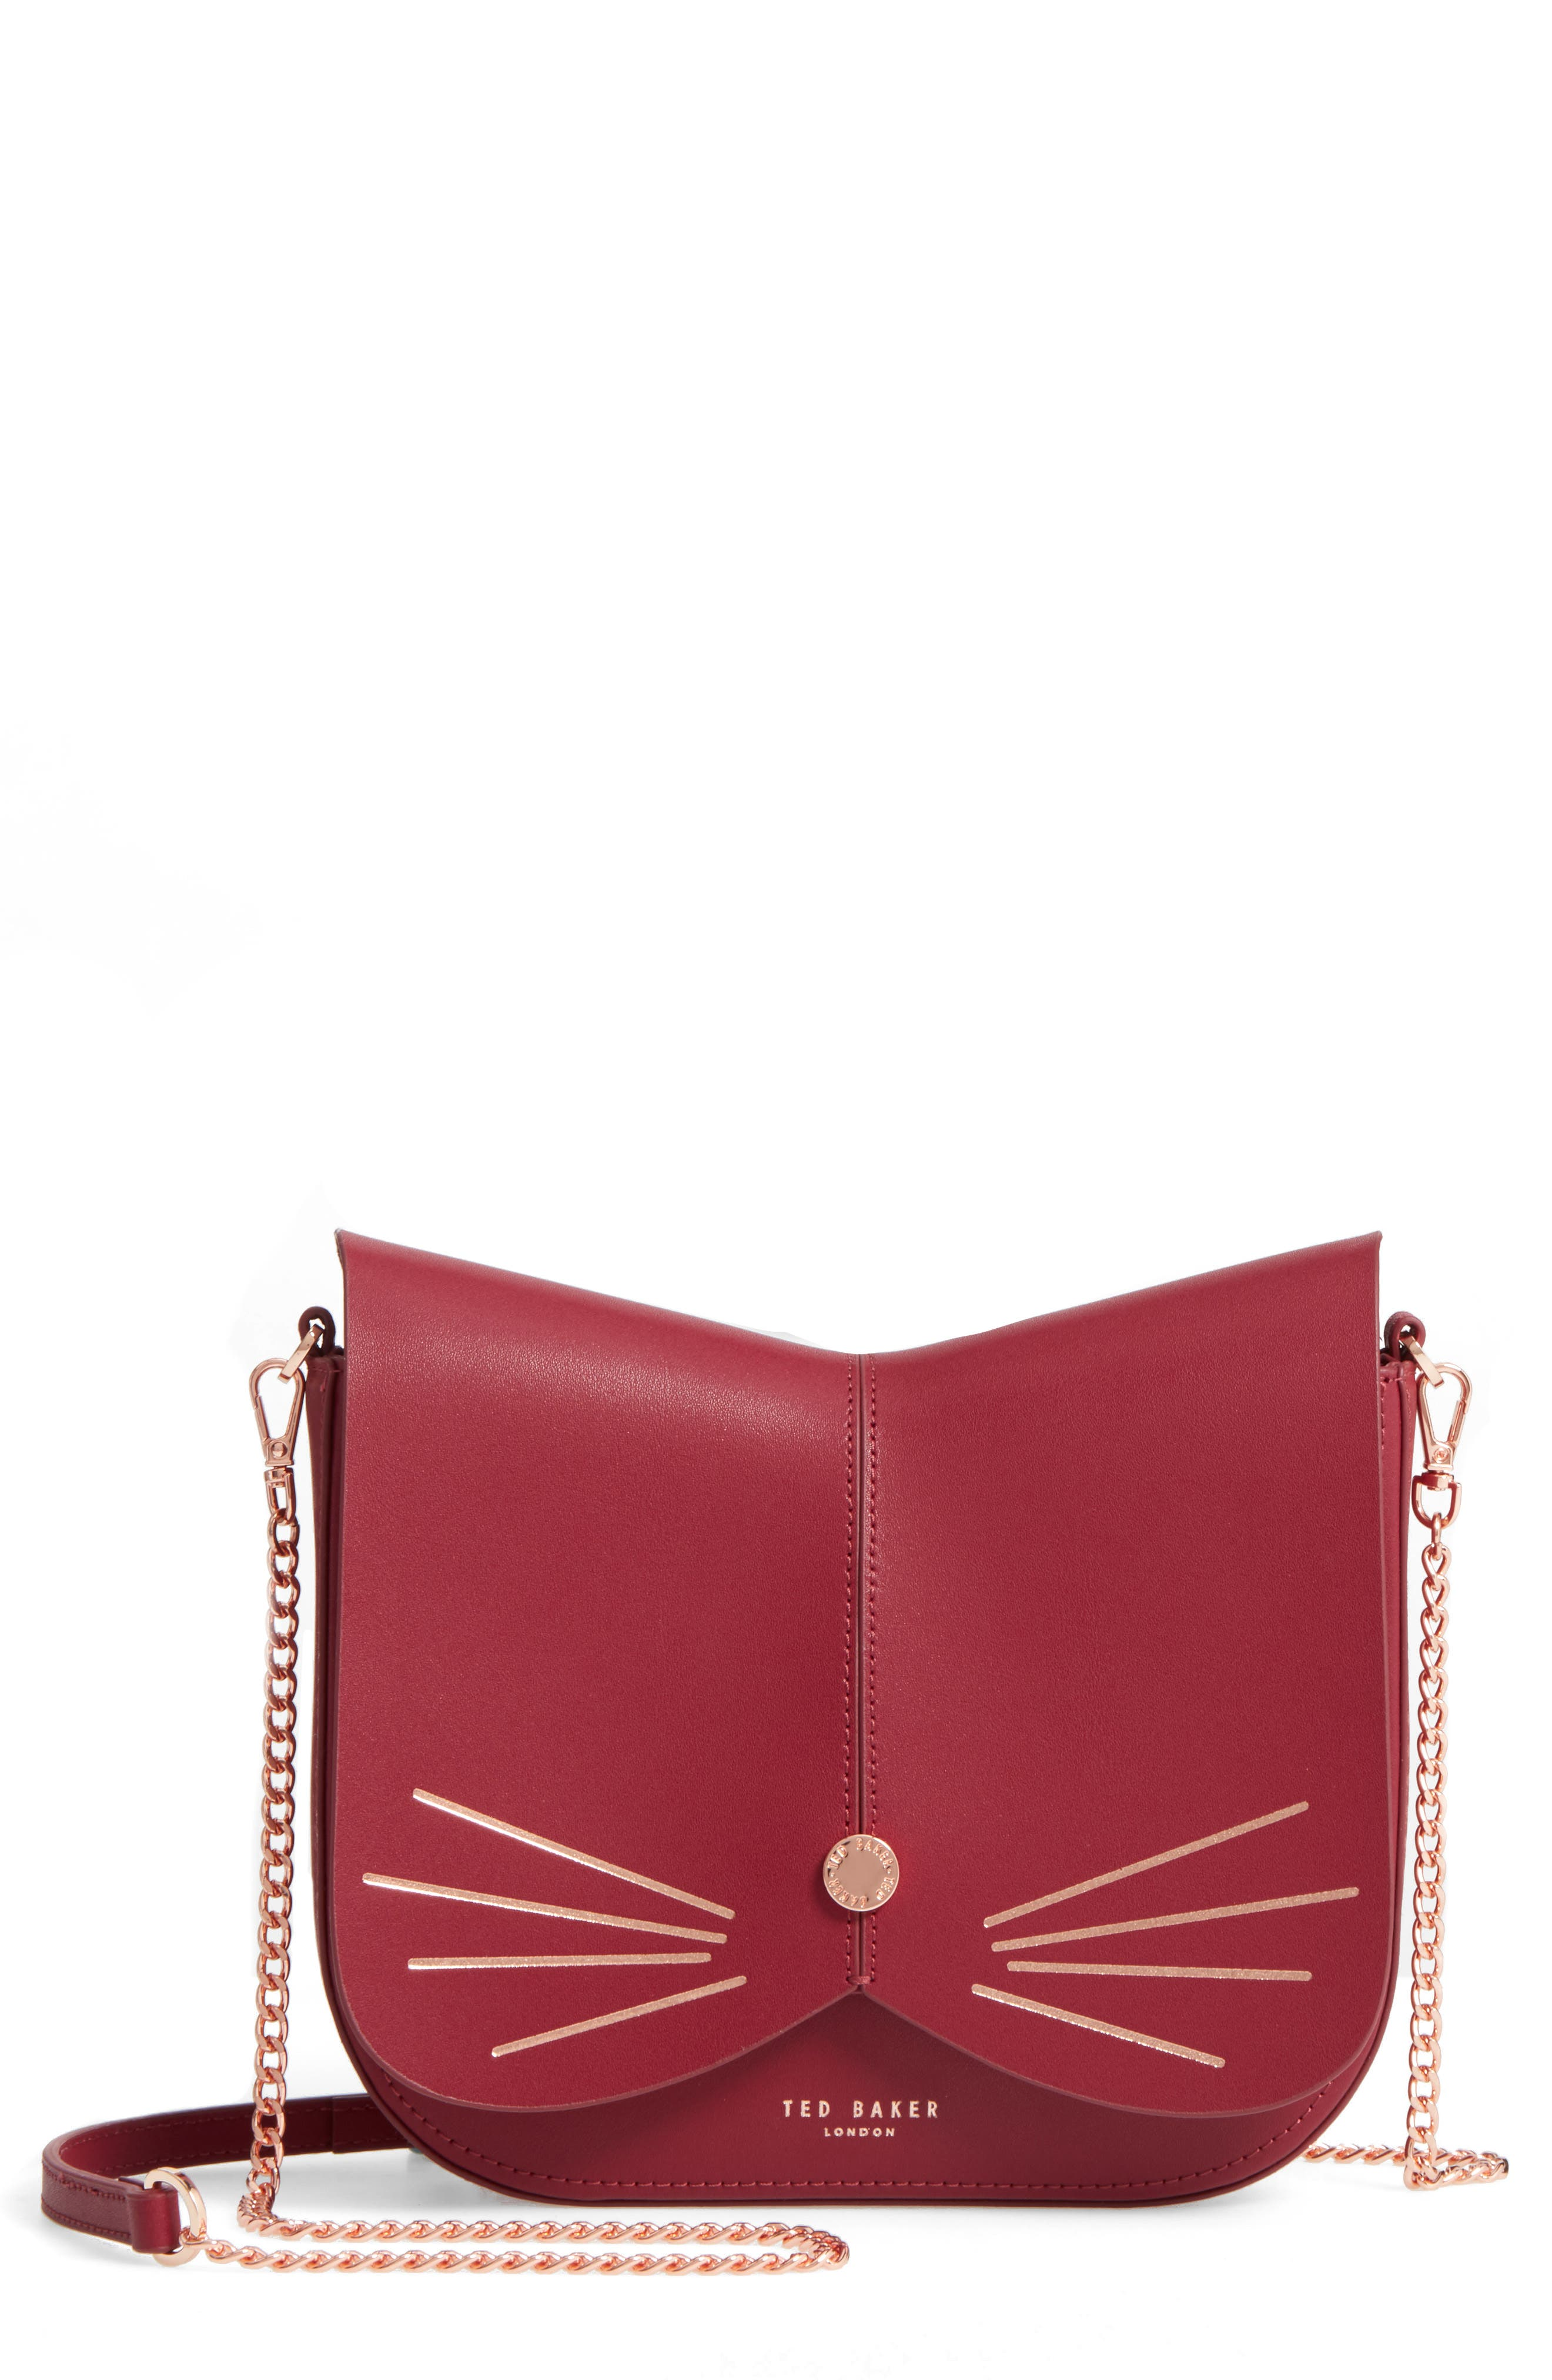 Kittii Cat Leather Crossbody Bag,                             Main thumbnail 4, color,